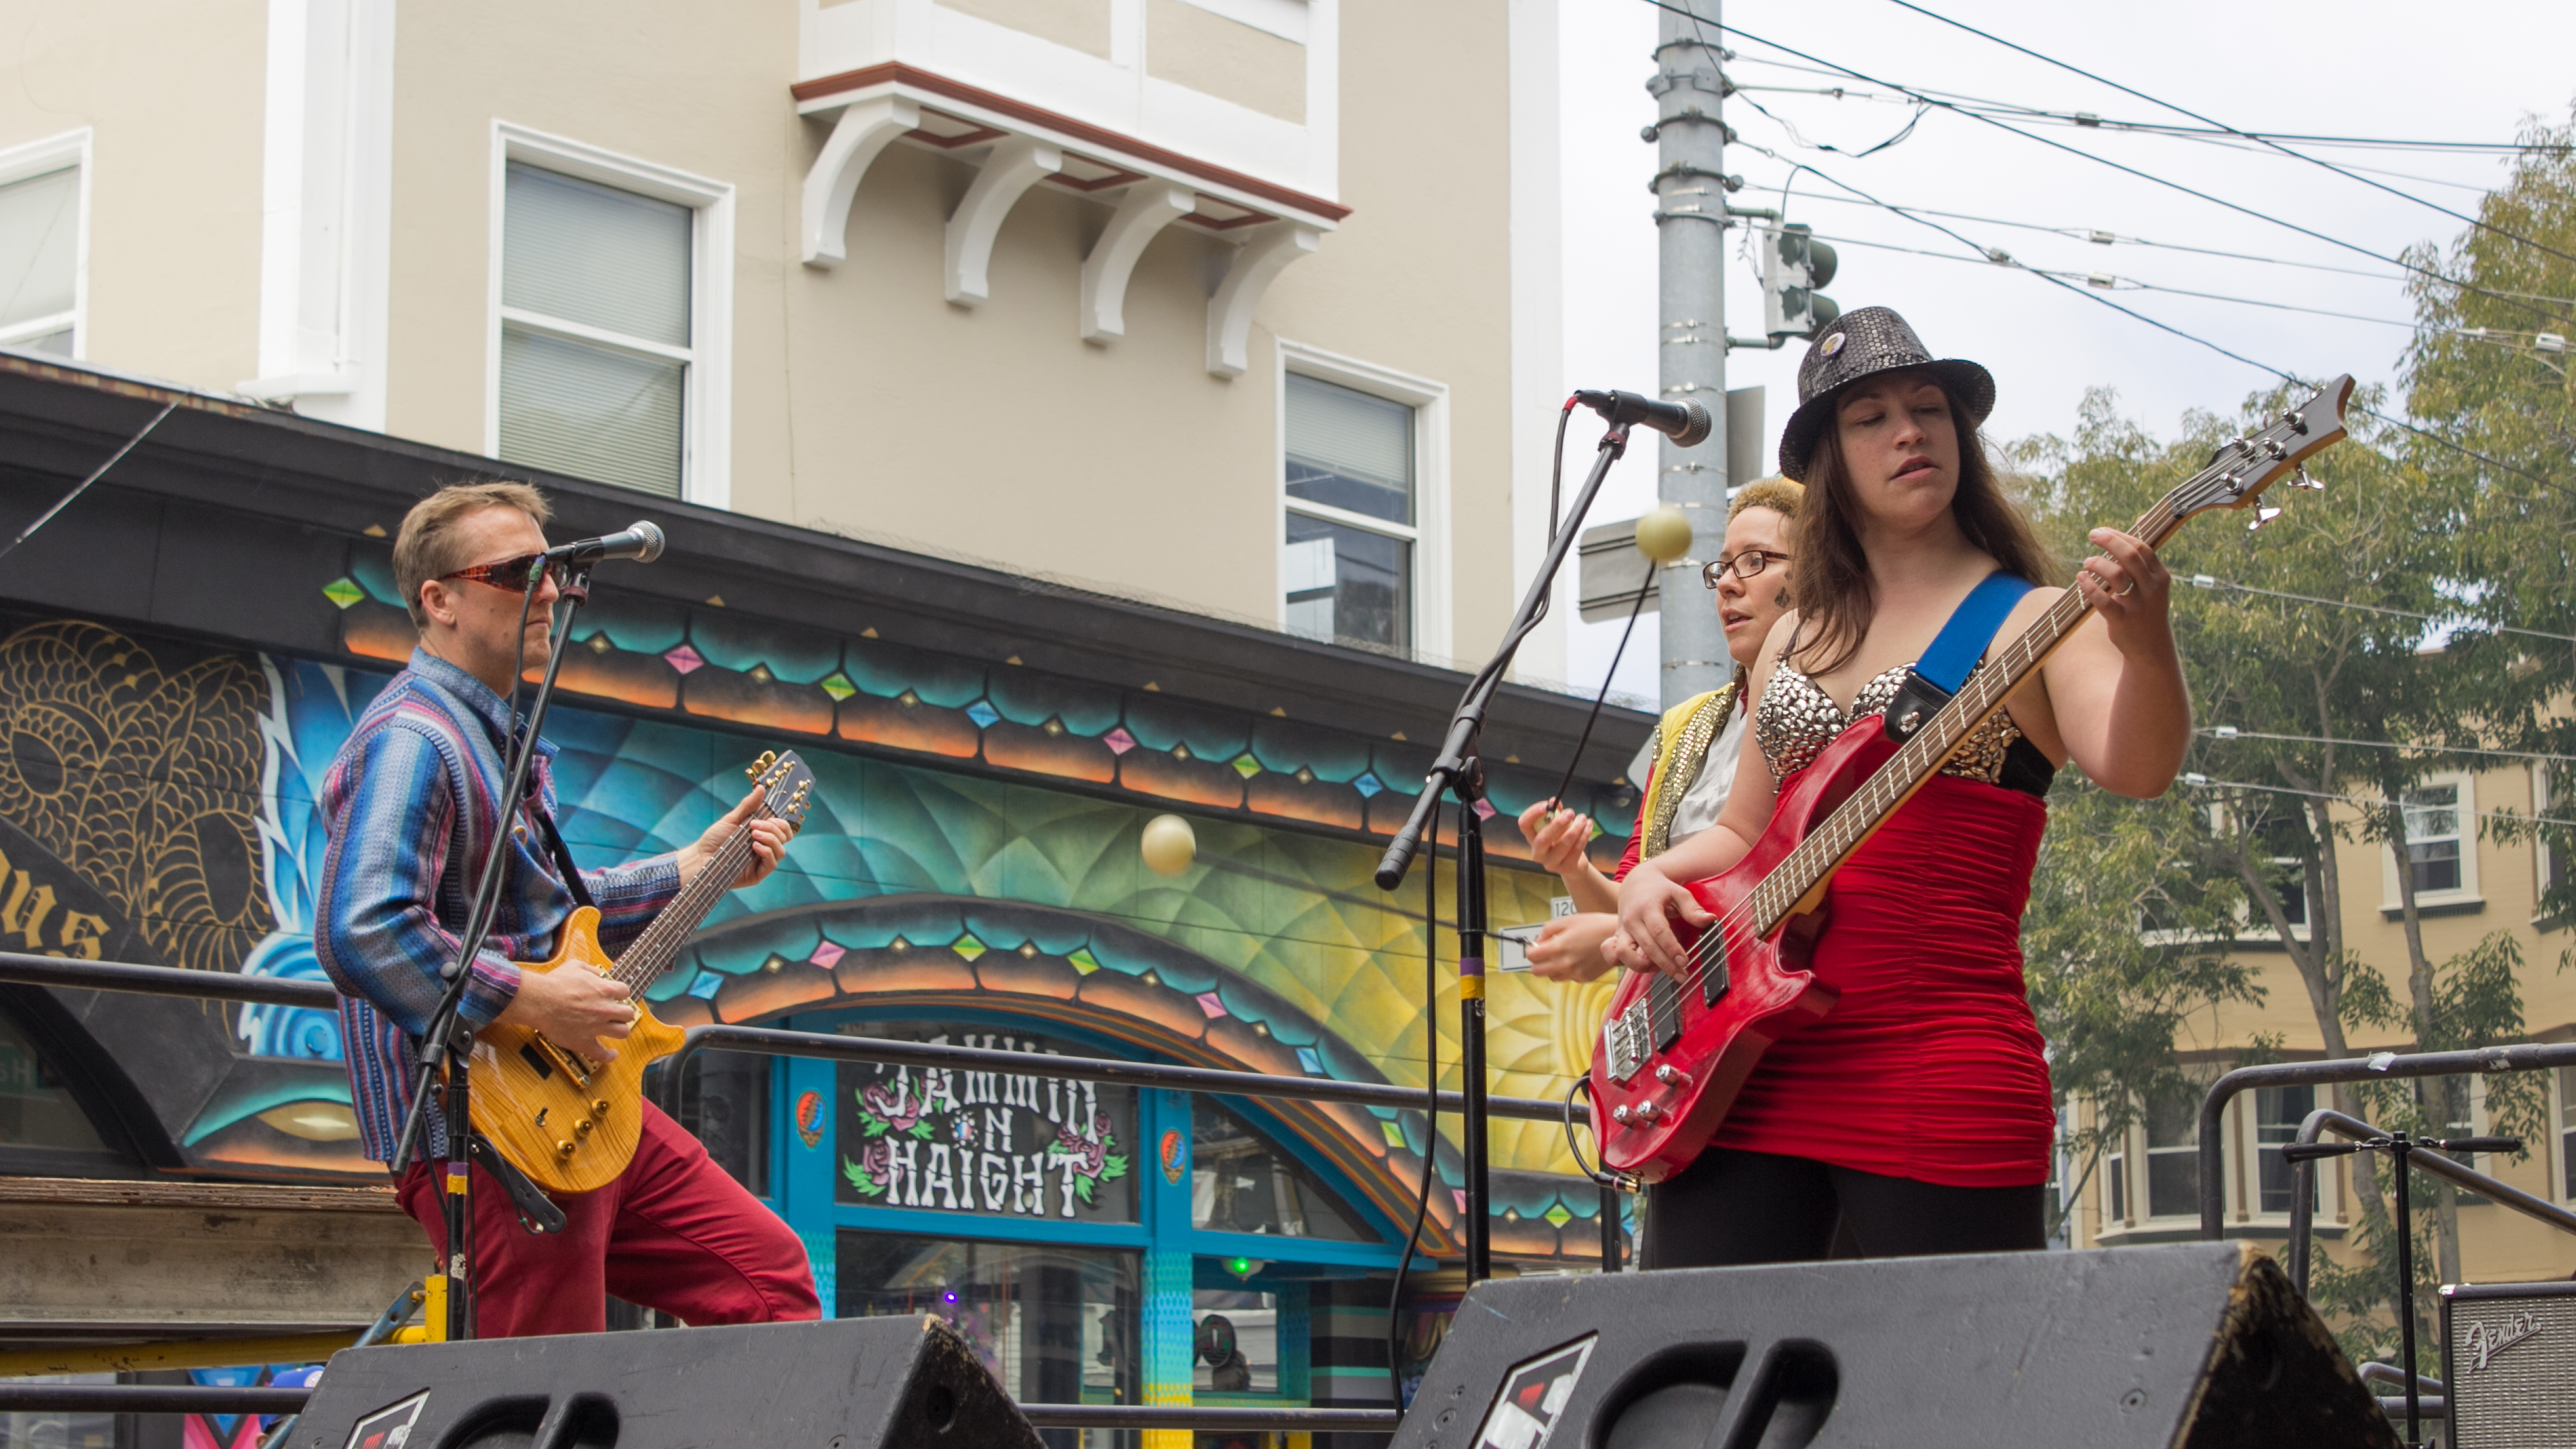 The Wyatt Act - Haight Ashbury Street Fair (26 of 46)